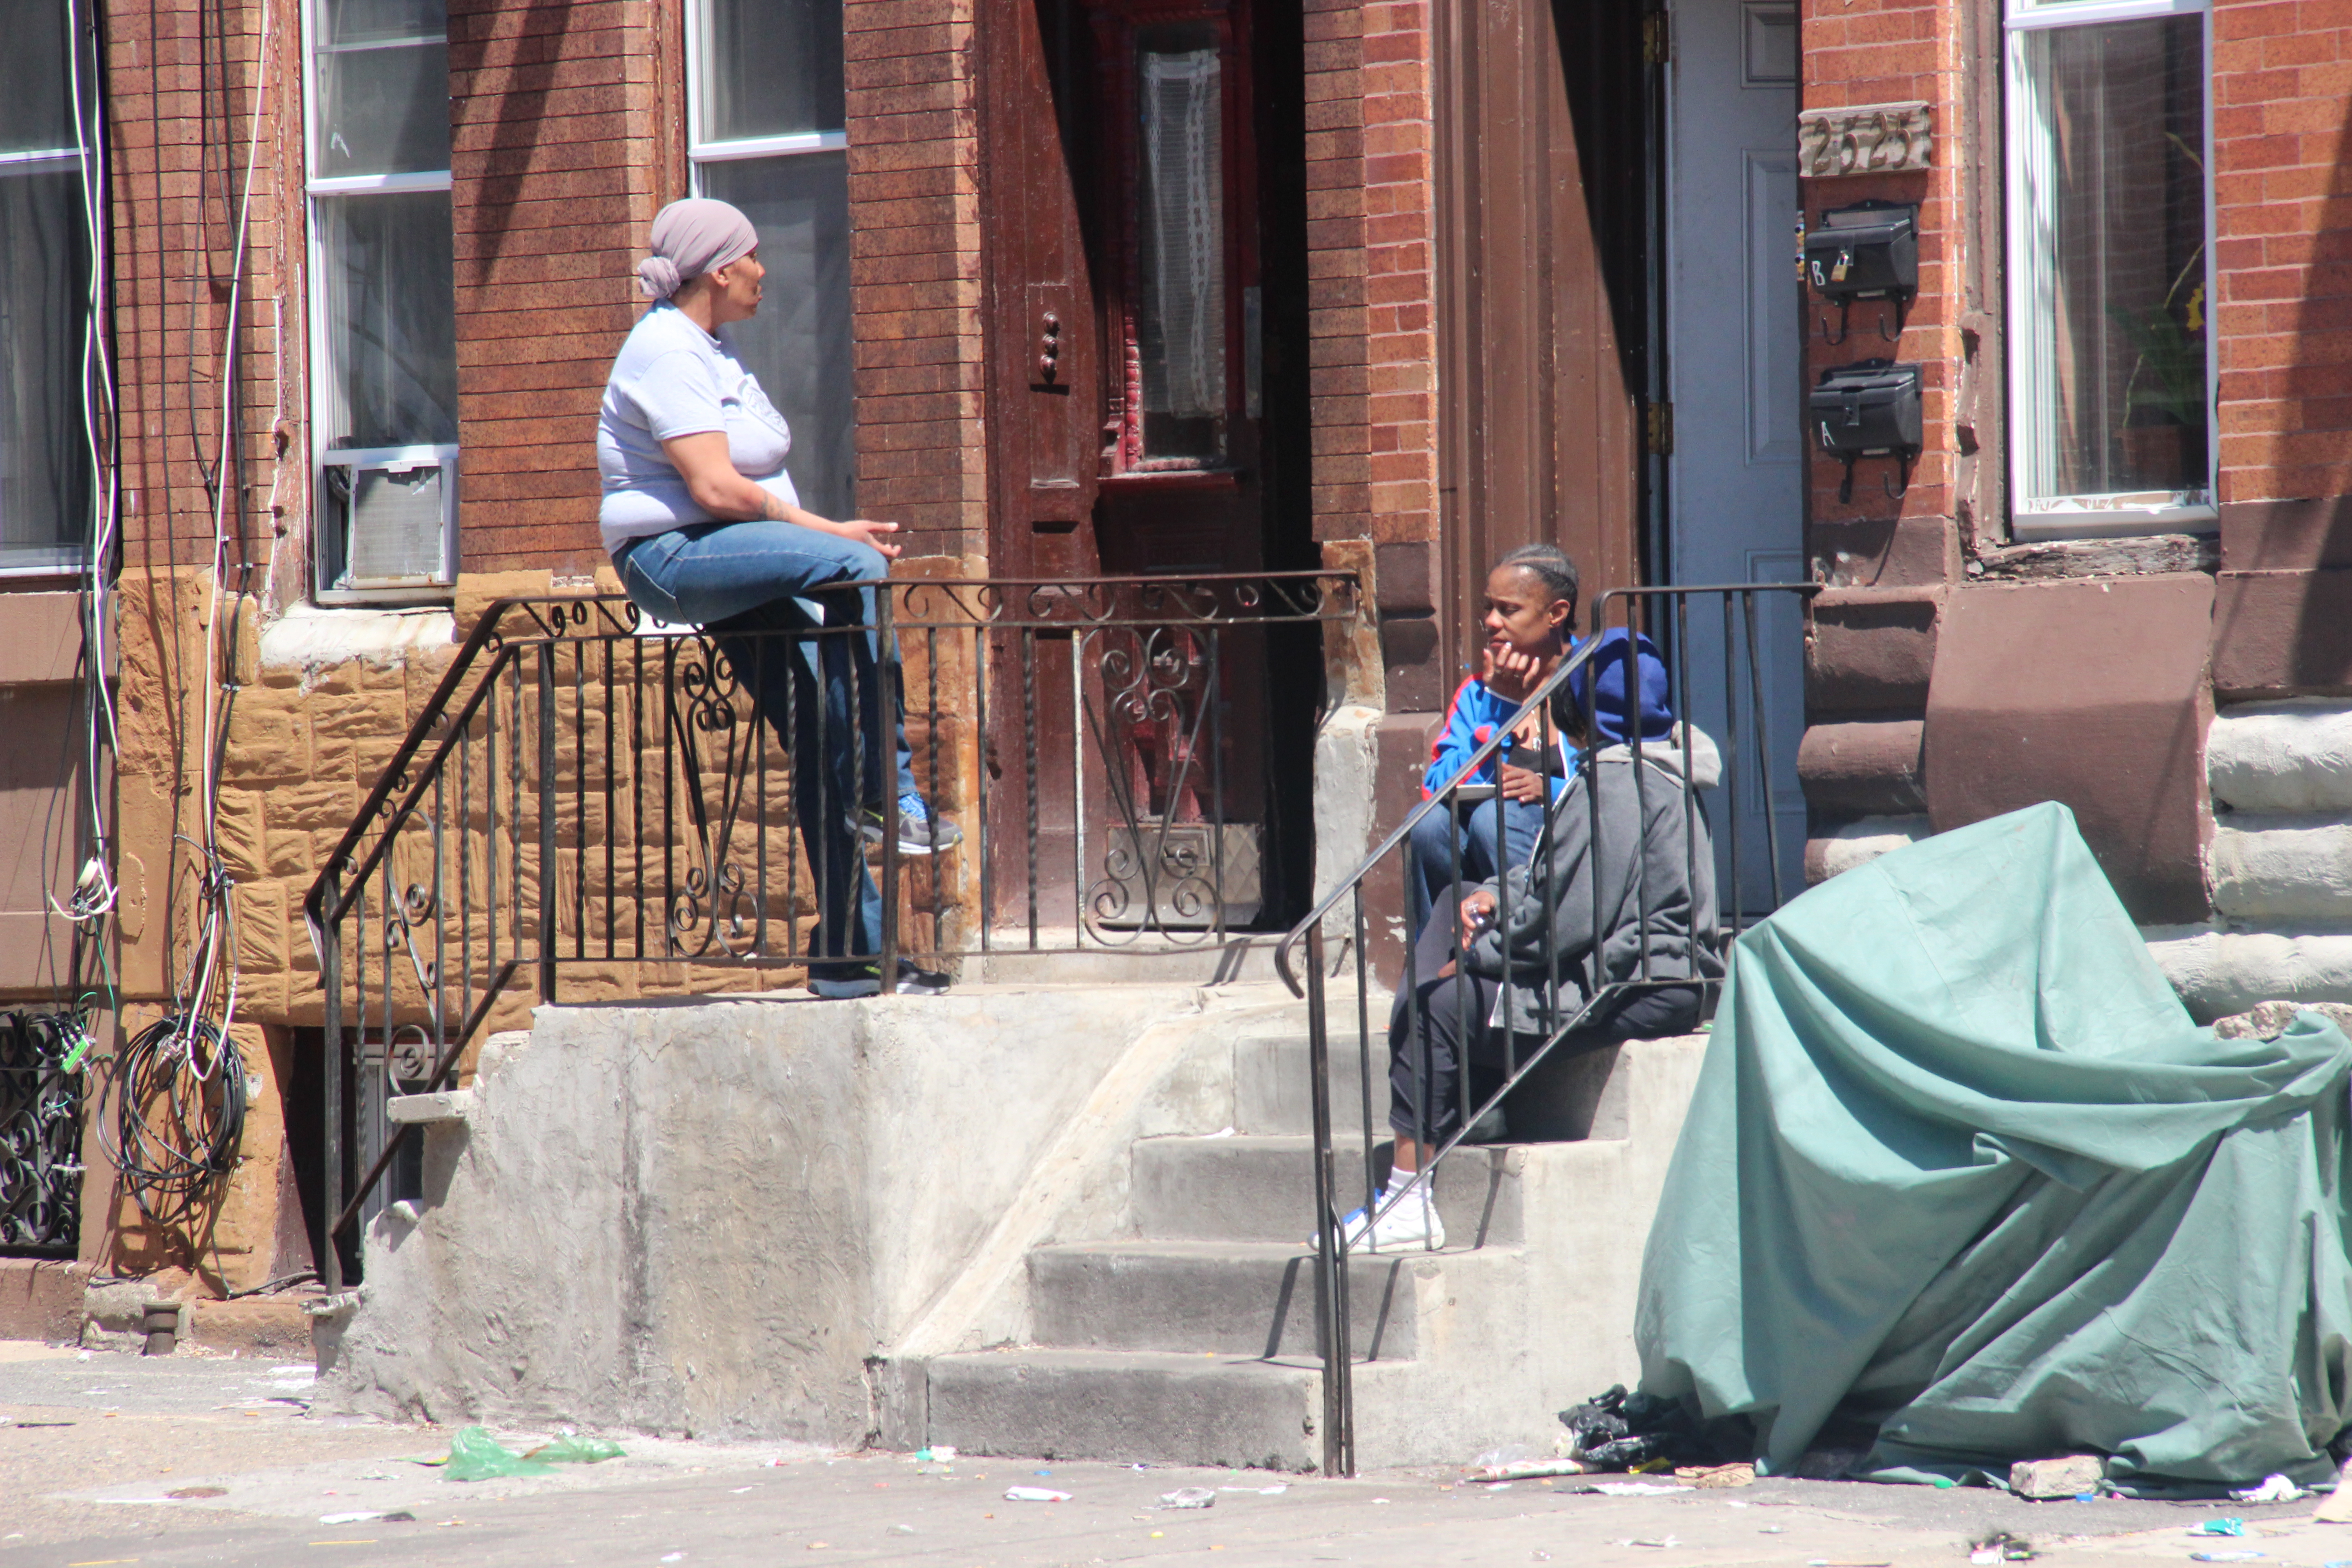 On the Stoop